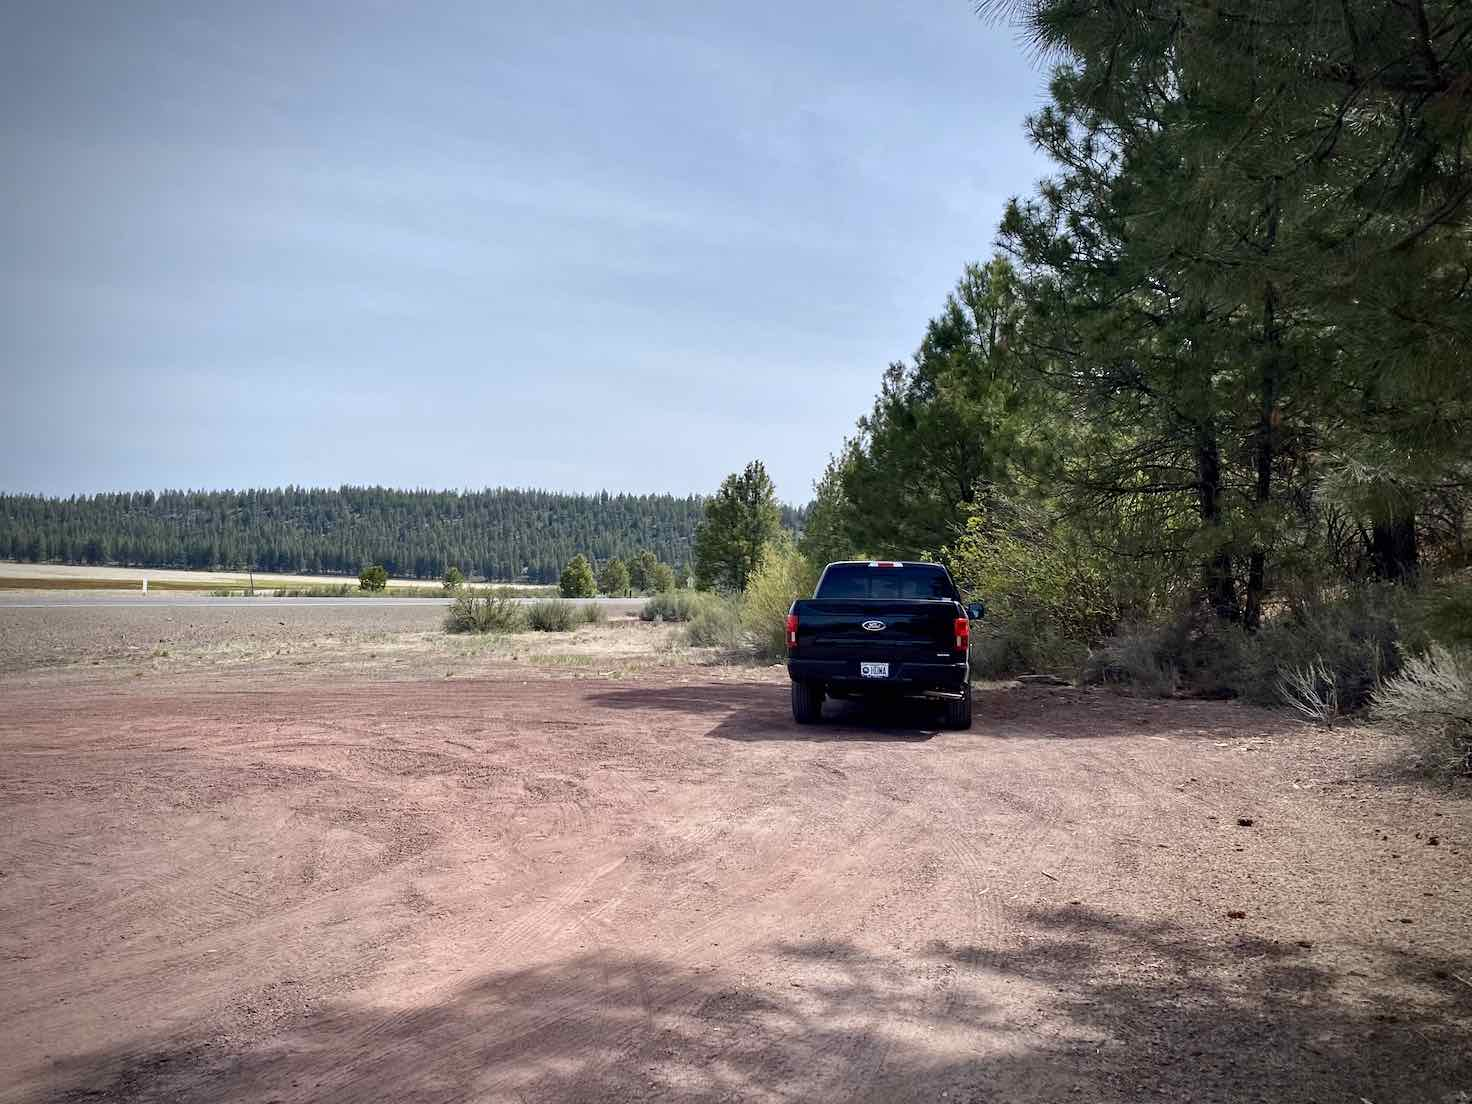 A dirt parking area off of Highway 676, Silver Lake road.